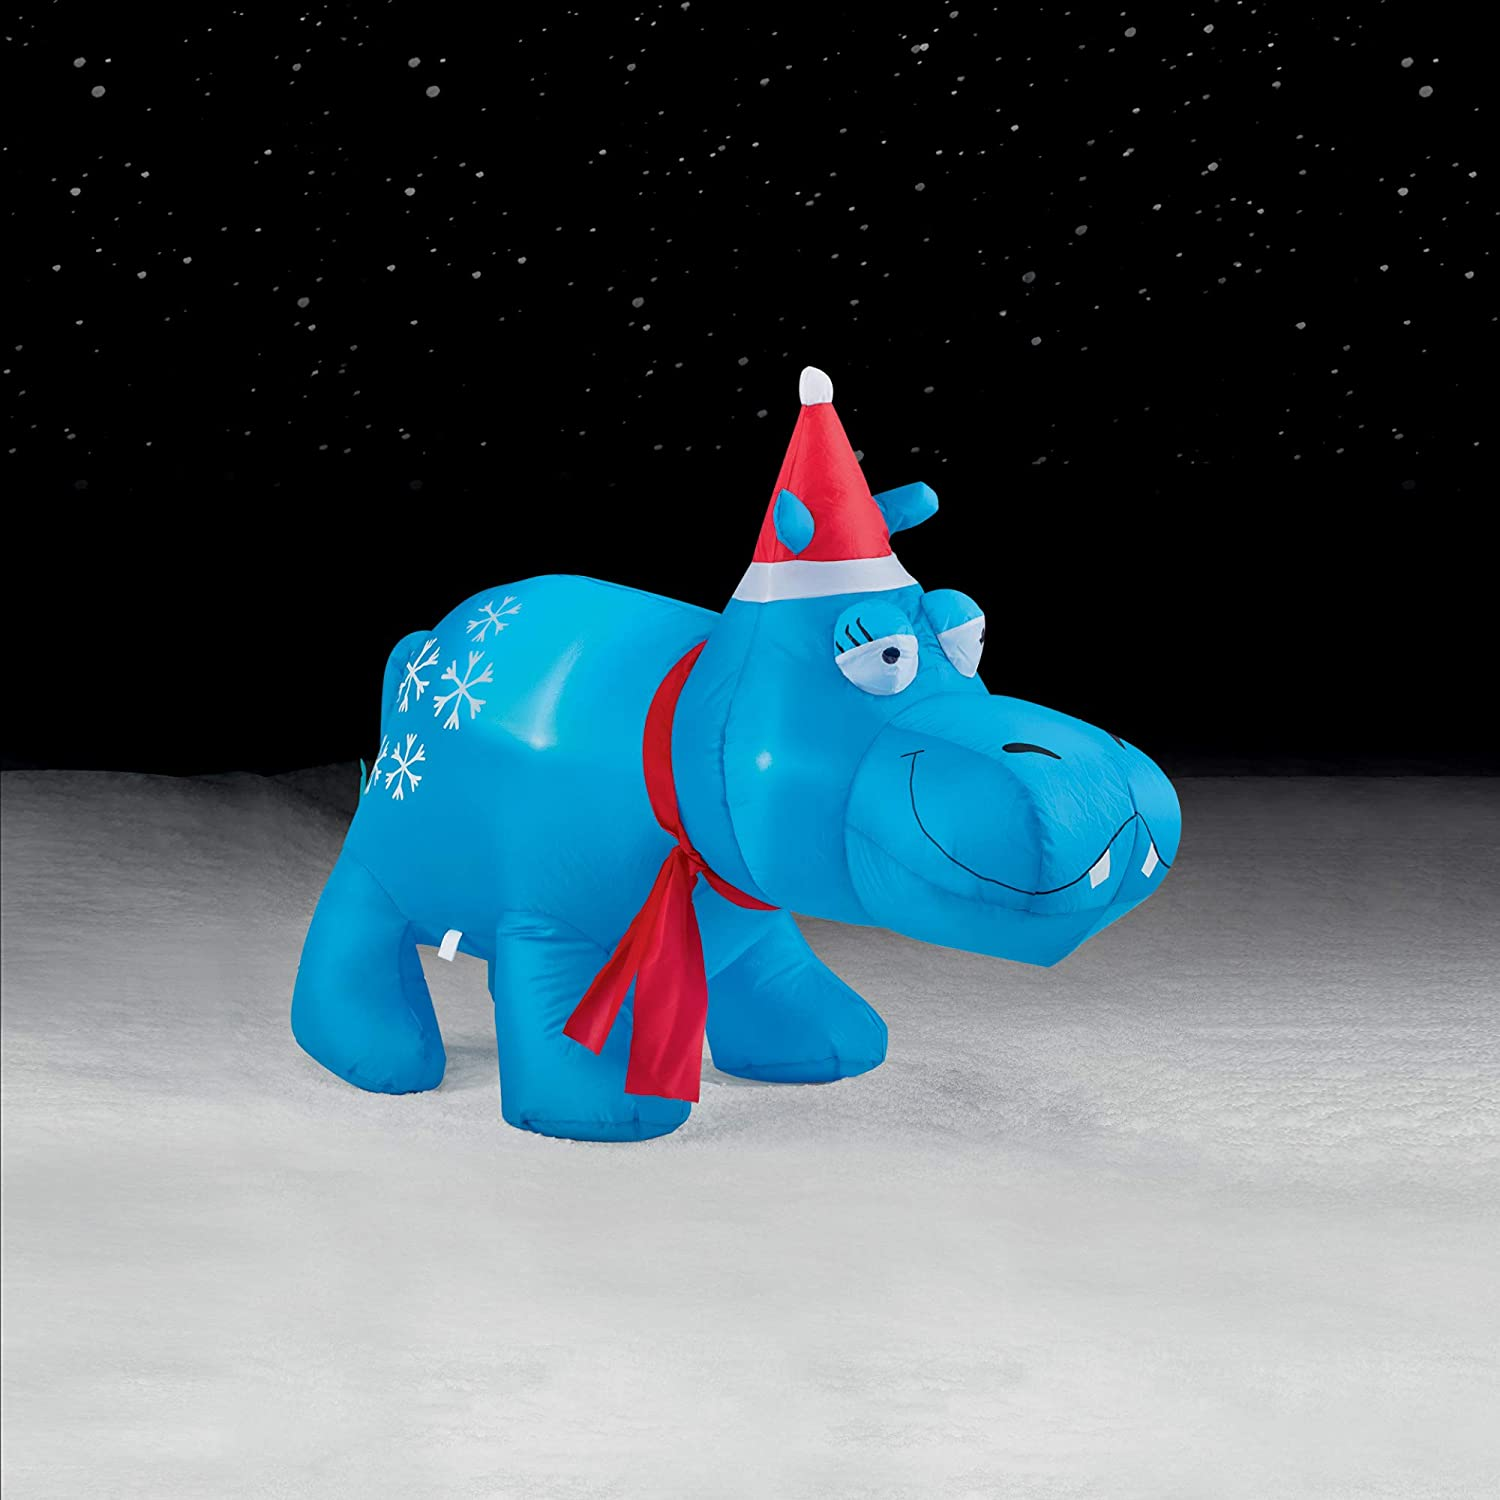 Brite Star 3.5ft Airblown Inflatables, Blue Hippo